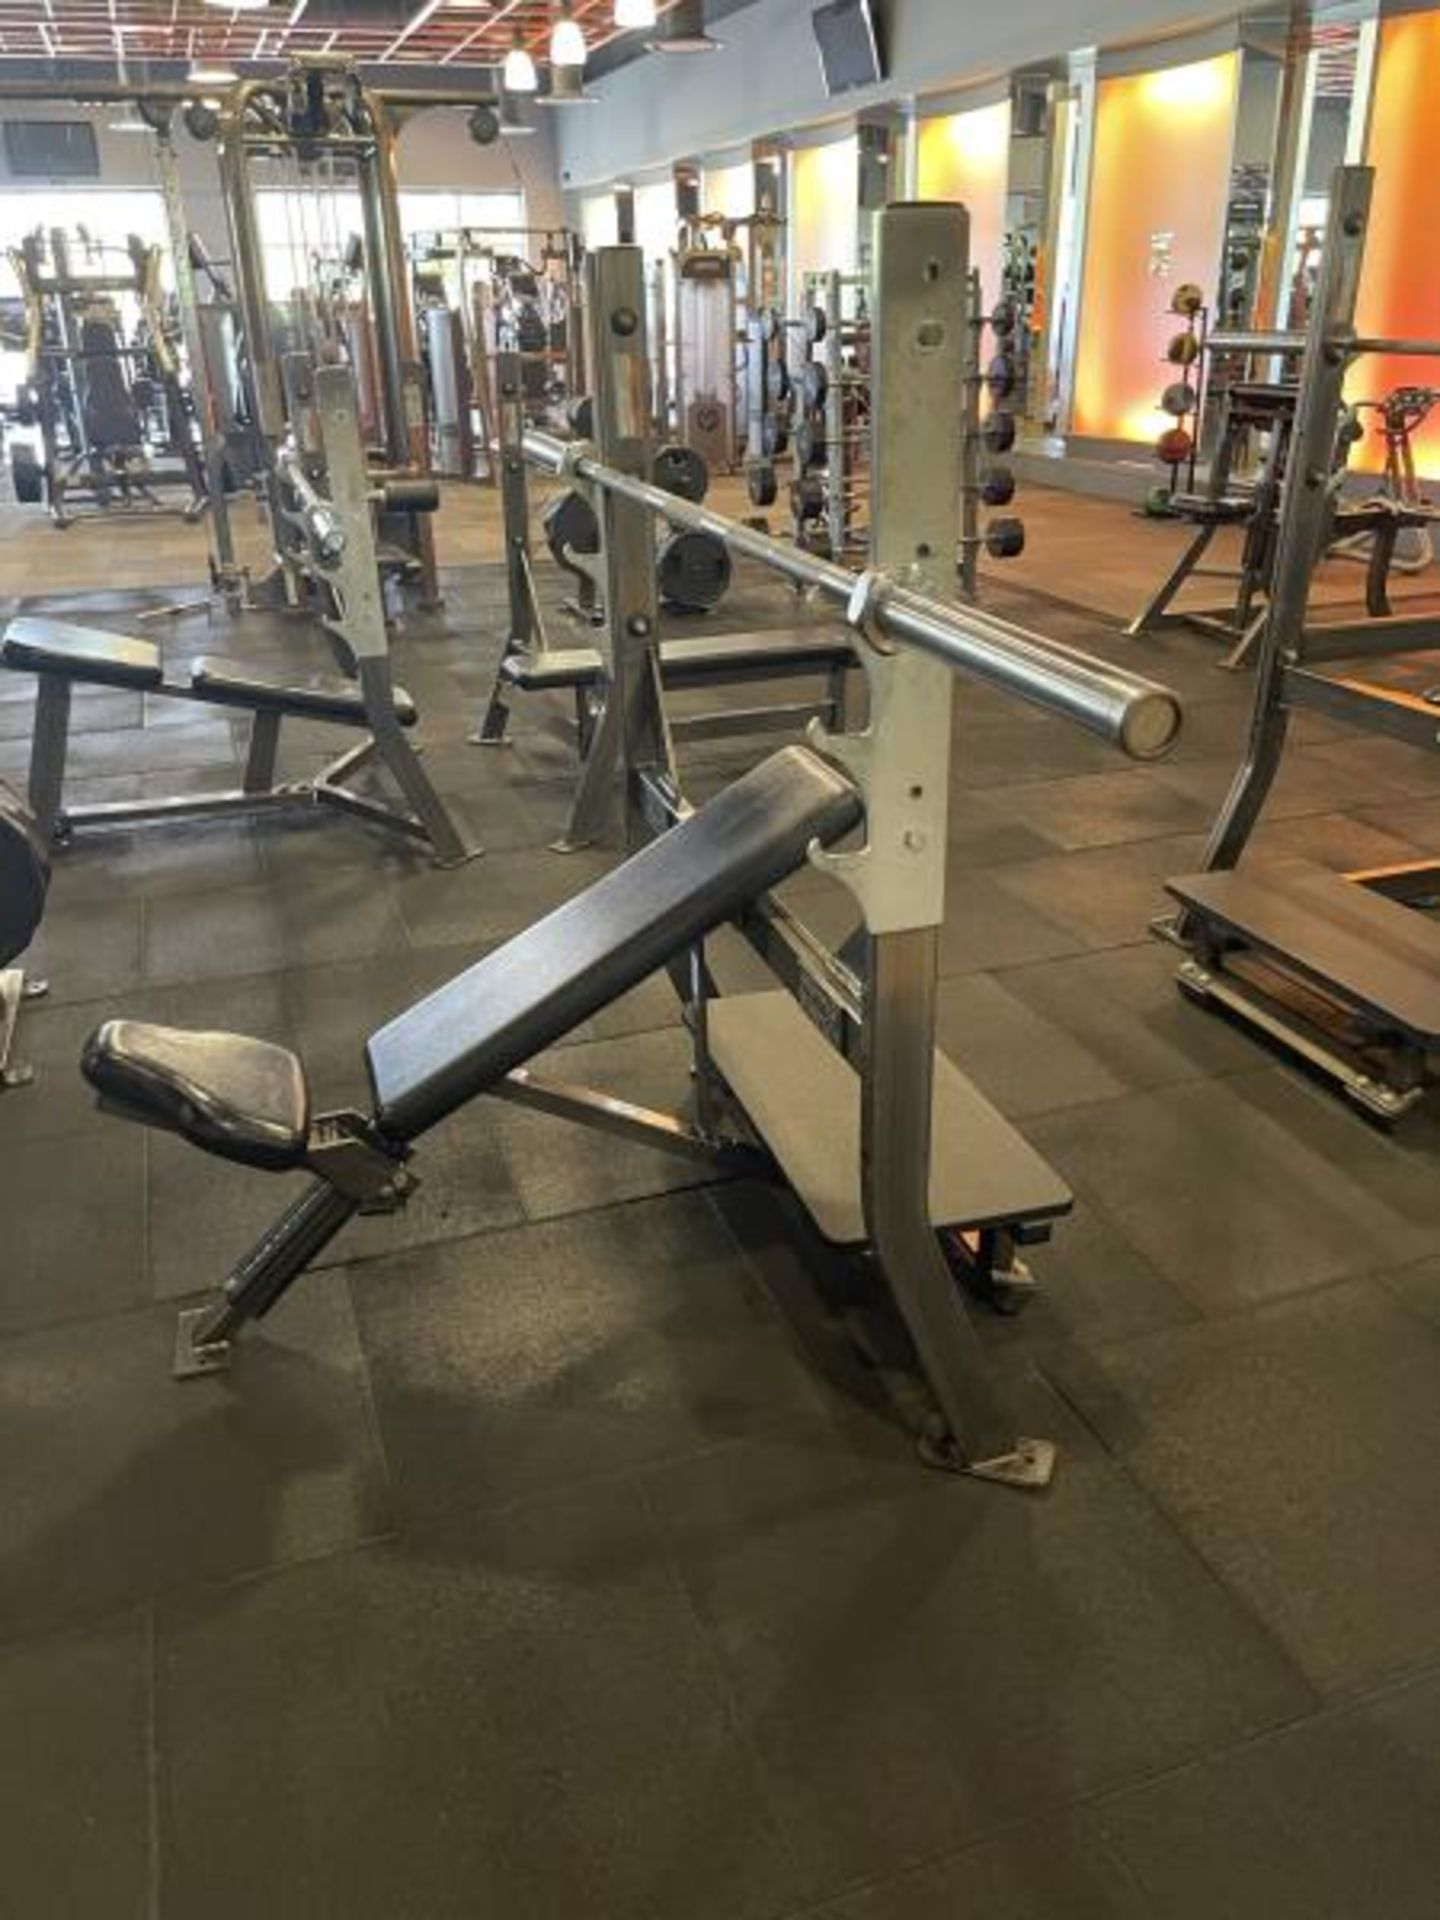 Hammer Strength with Bench, Rack, Bars - Image 3 of 5